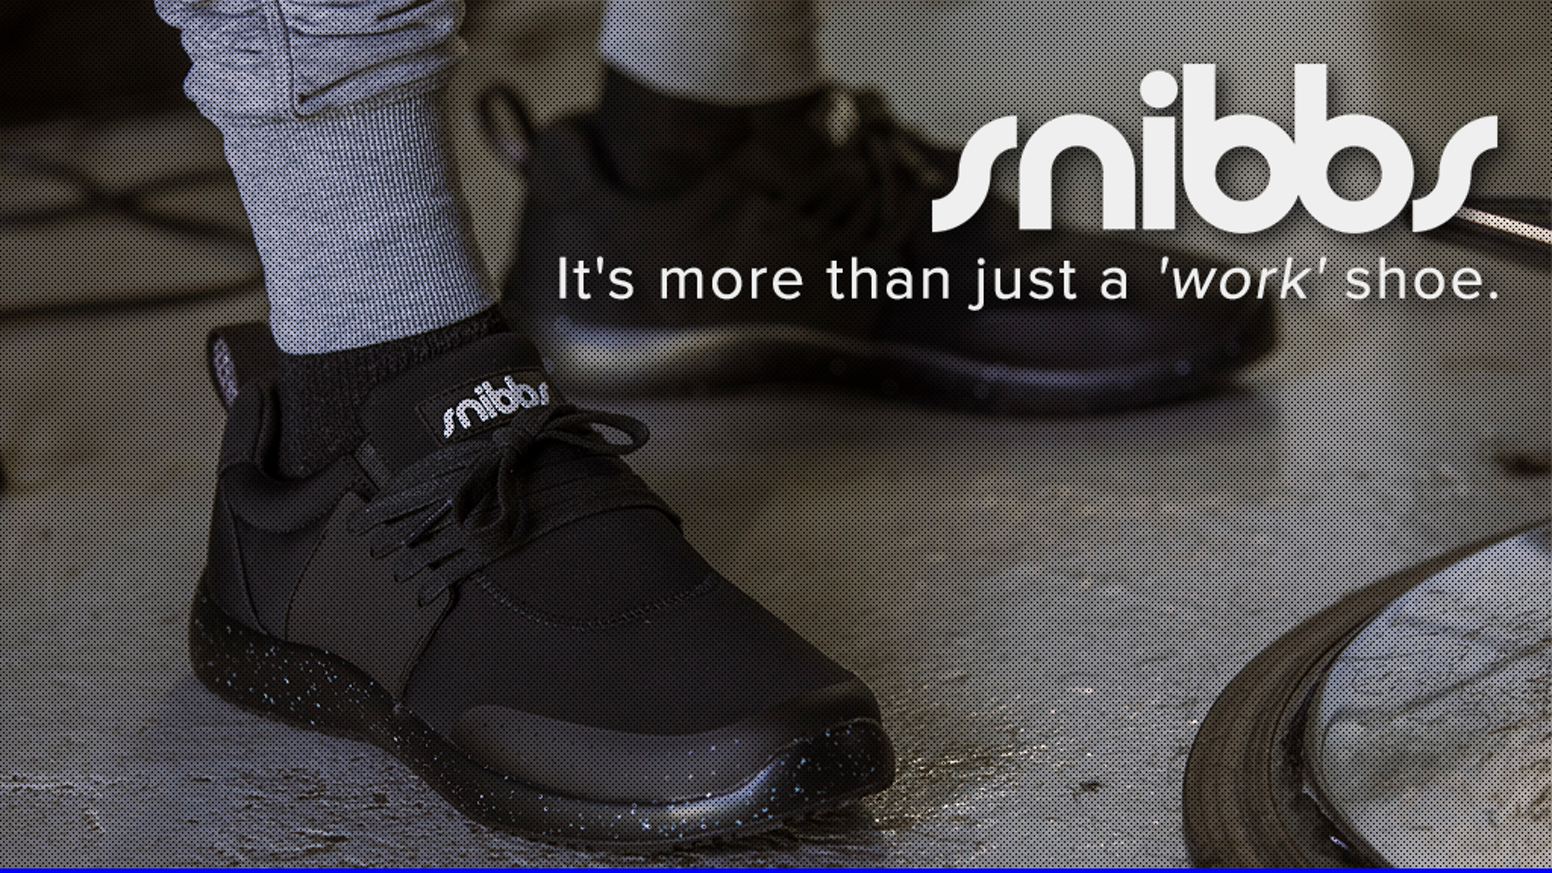 Snibbs All Day Shoes For Working On Off The Clock By Snibbs